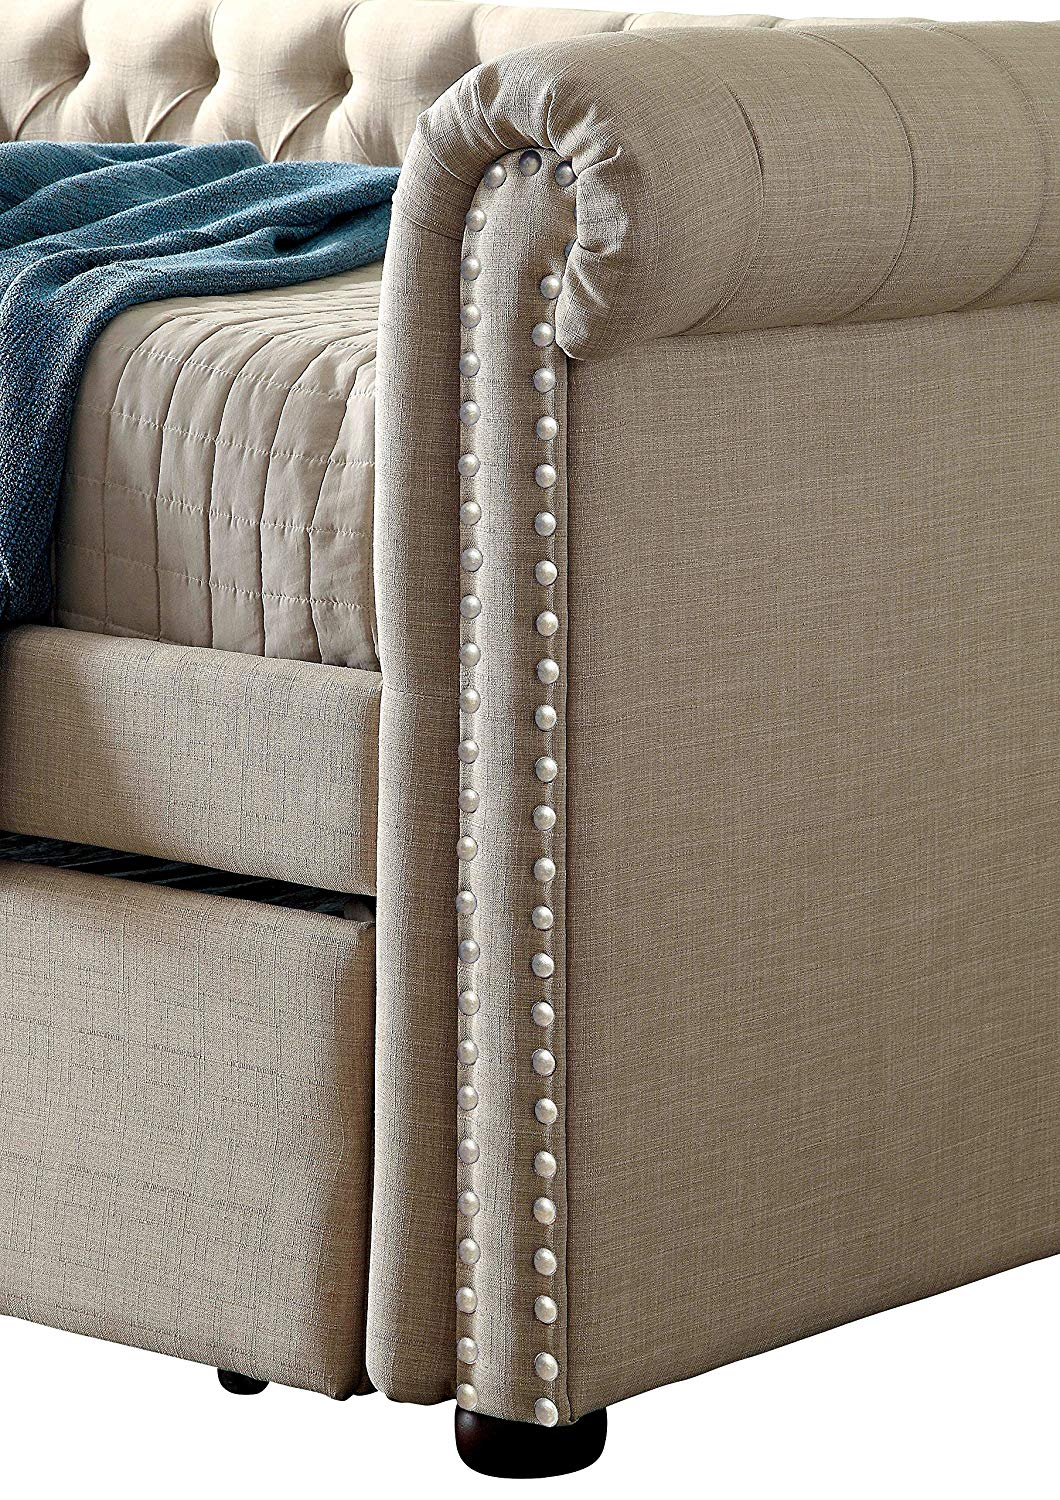 HOMES: Inside + Out IDF-1027BG-Q Hunten Daybed, Queen, Beige